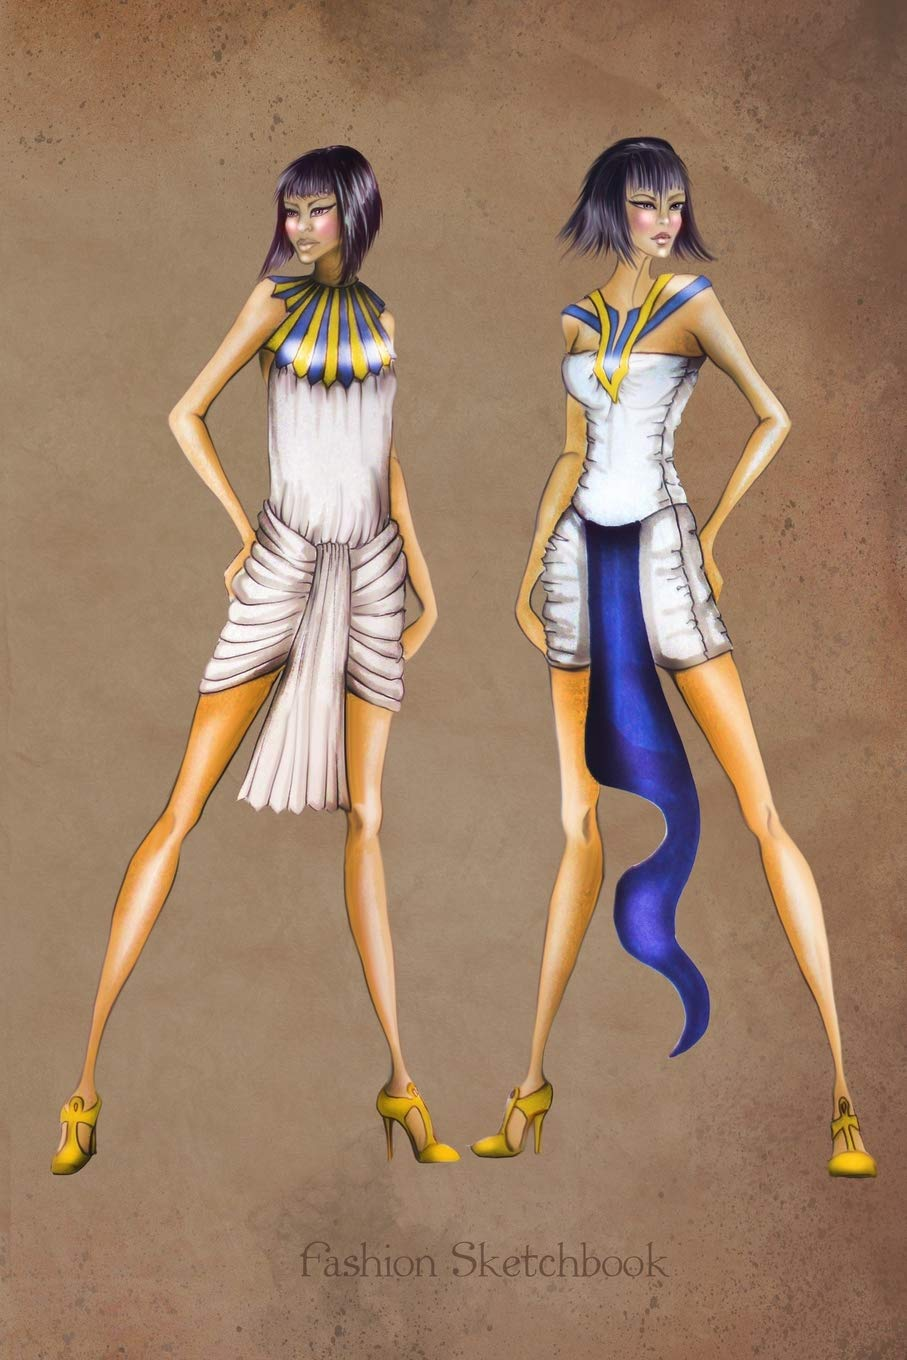 Buy Fashion Sketchbook Ancient Egypt Fashion Illustrations Fashion Croquis Templates For Designers Book Online At Low Prices In India Fashion Sketchbook Ancient Egypt Fashion Illustrations Fashion Croquis Templates For Designers Reviews